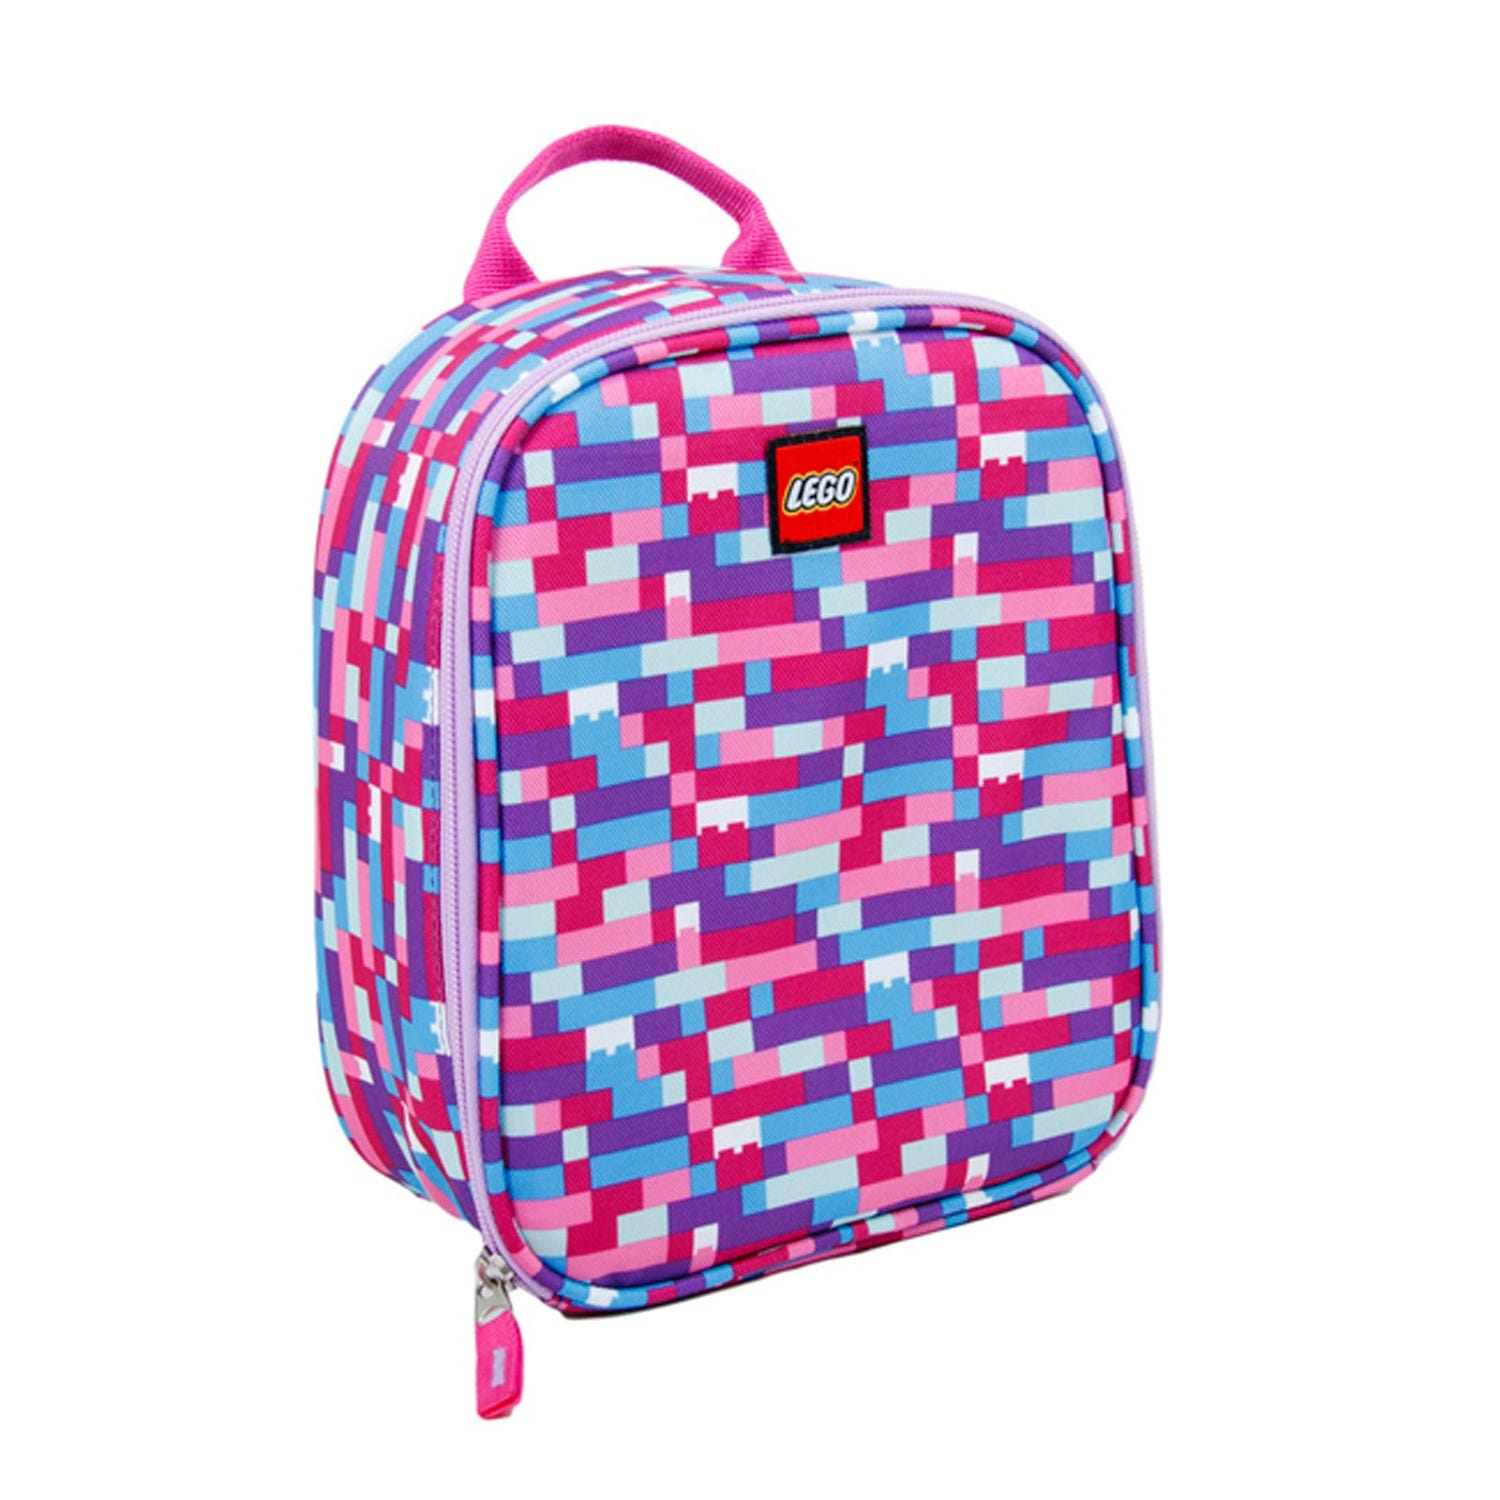 LEGO® Pink/Purple Brick Print Lunch Bag